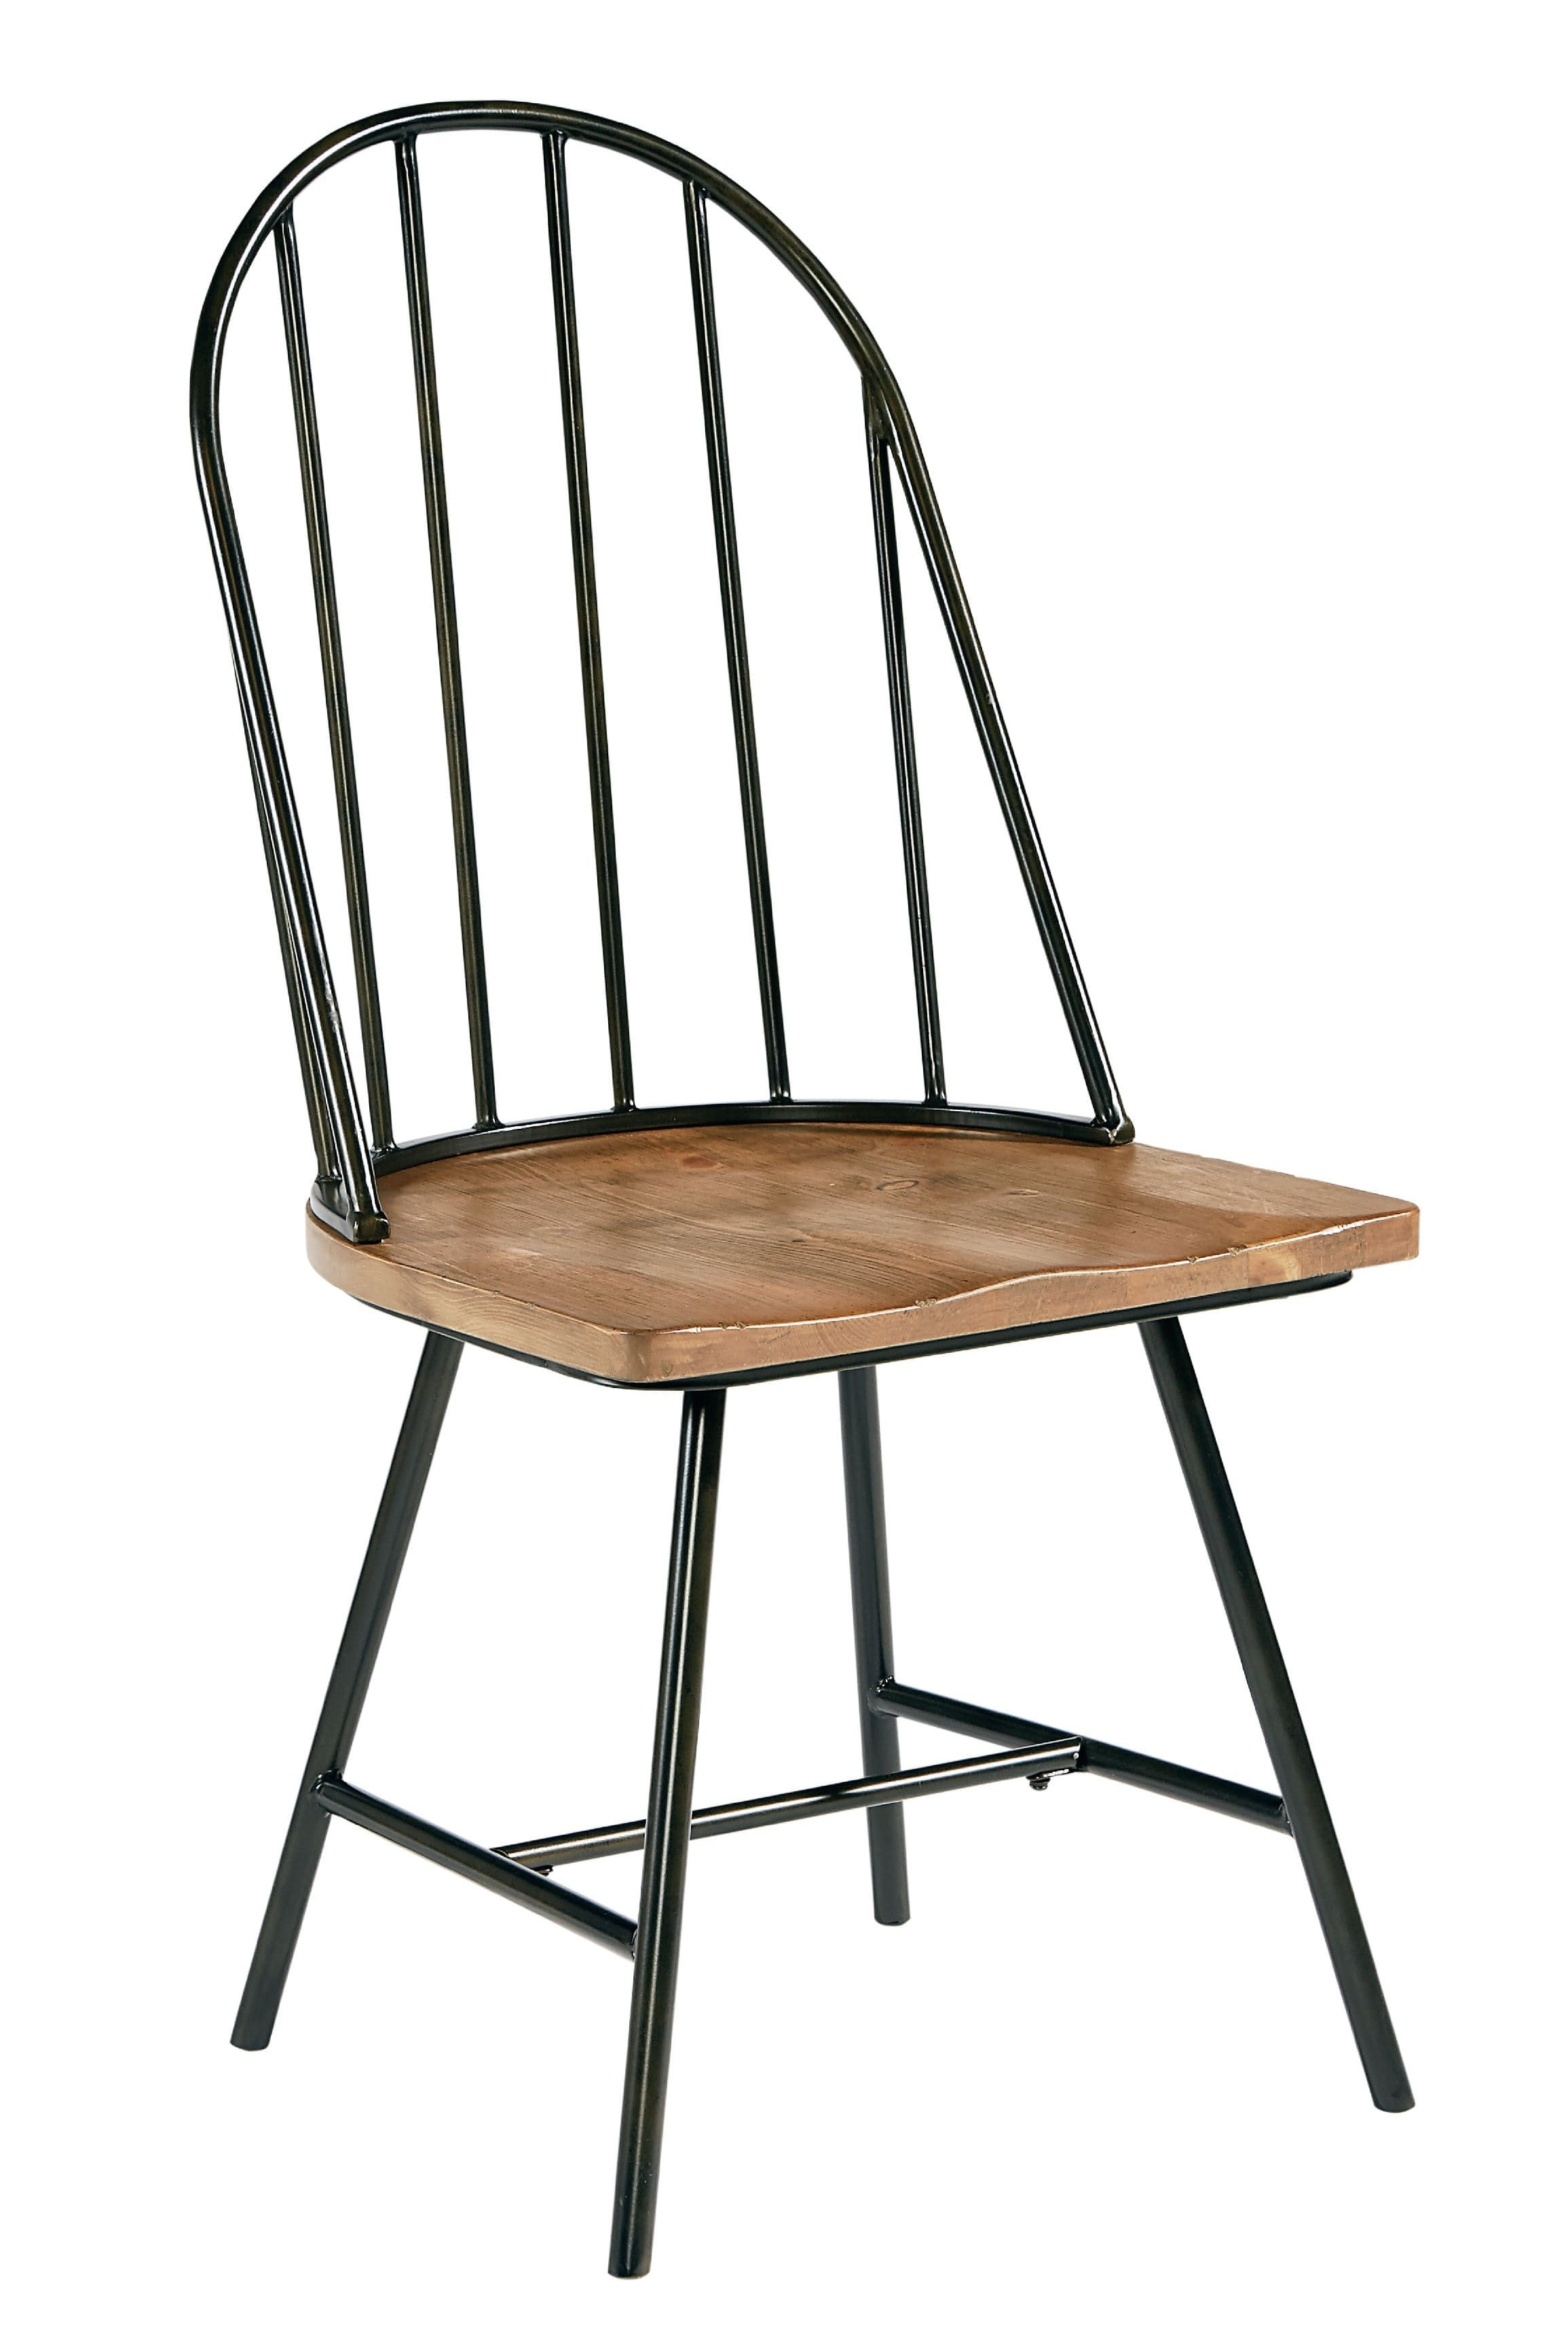 Inspiration about Magnolia Home – Windsor Metal And Wood Hoop Chair St:461600 (#9 of 20)